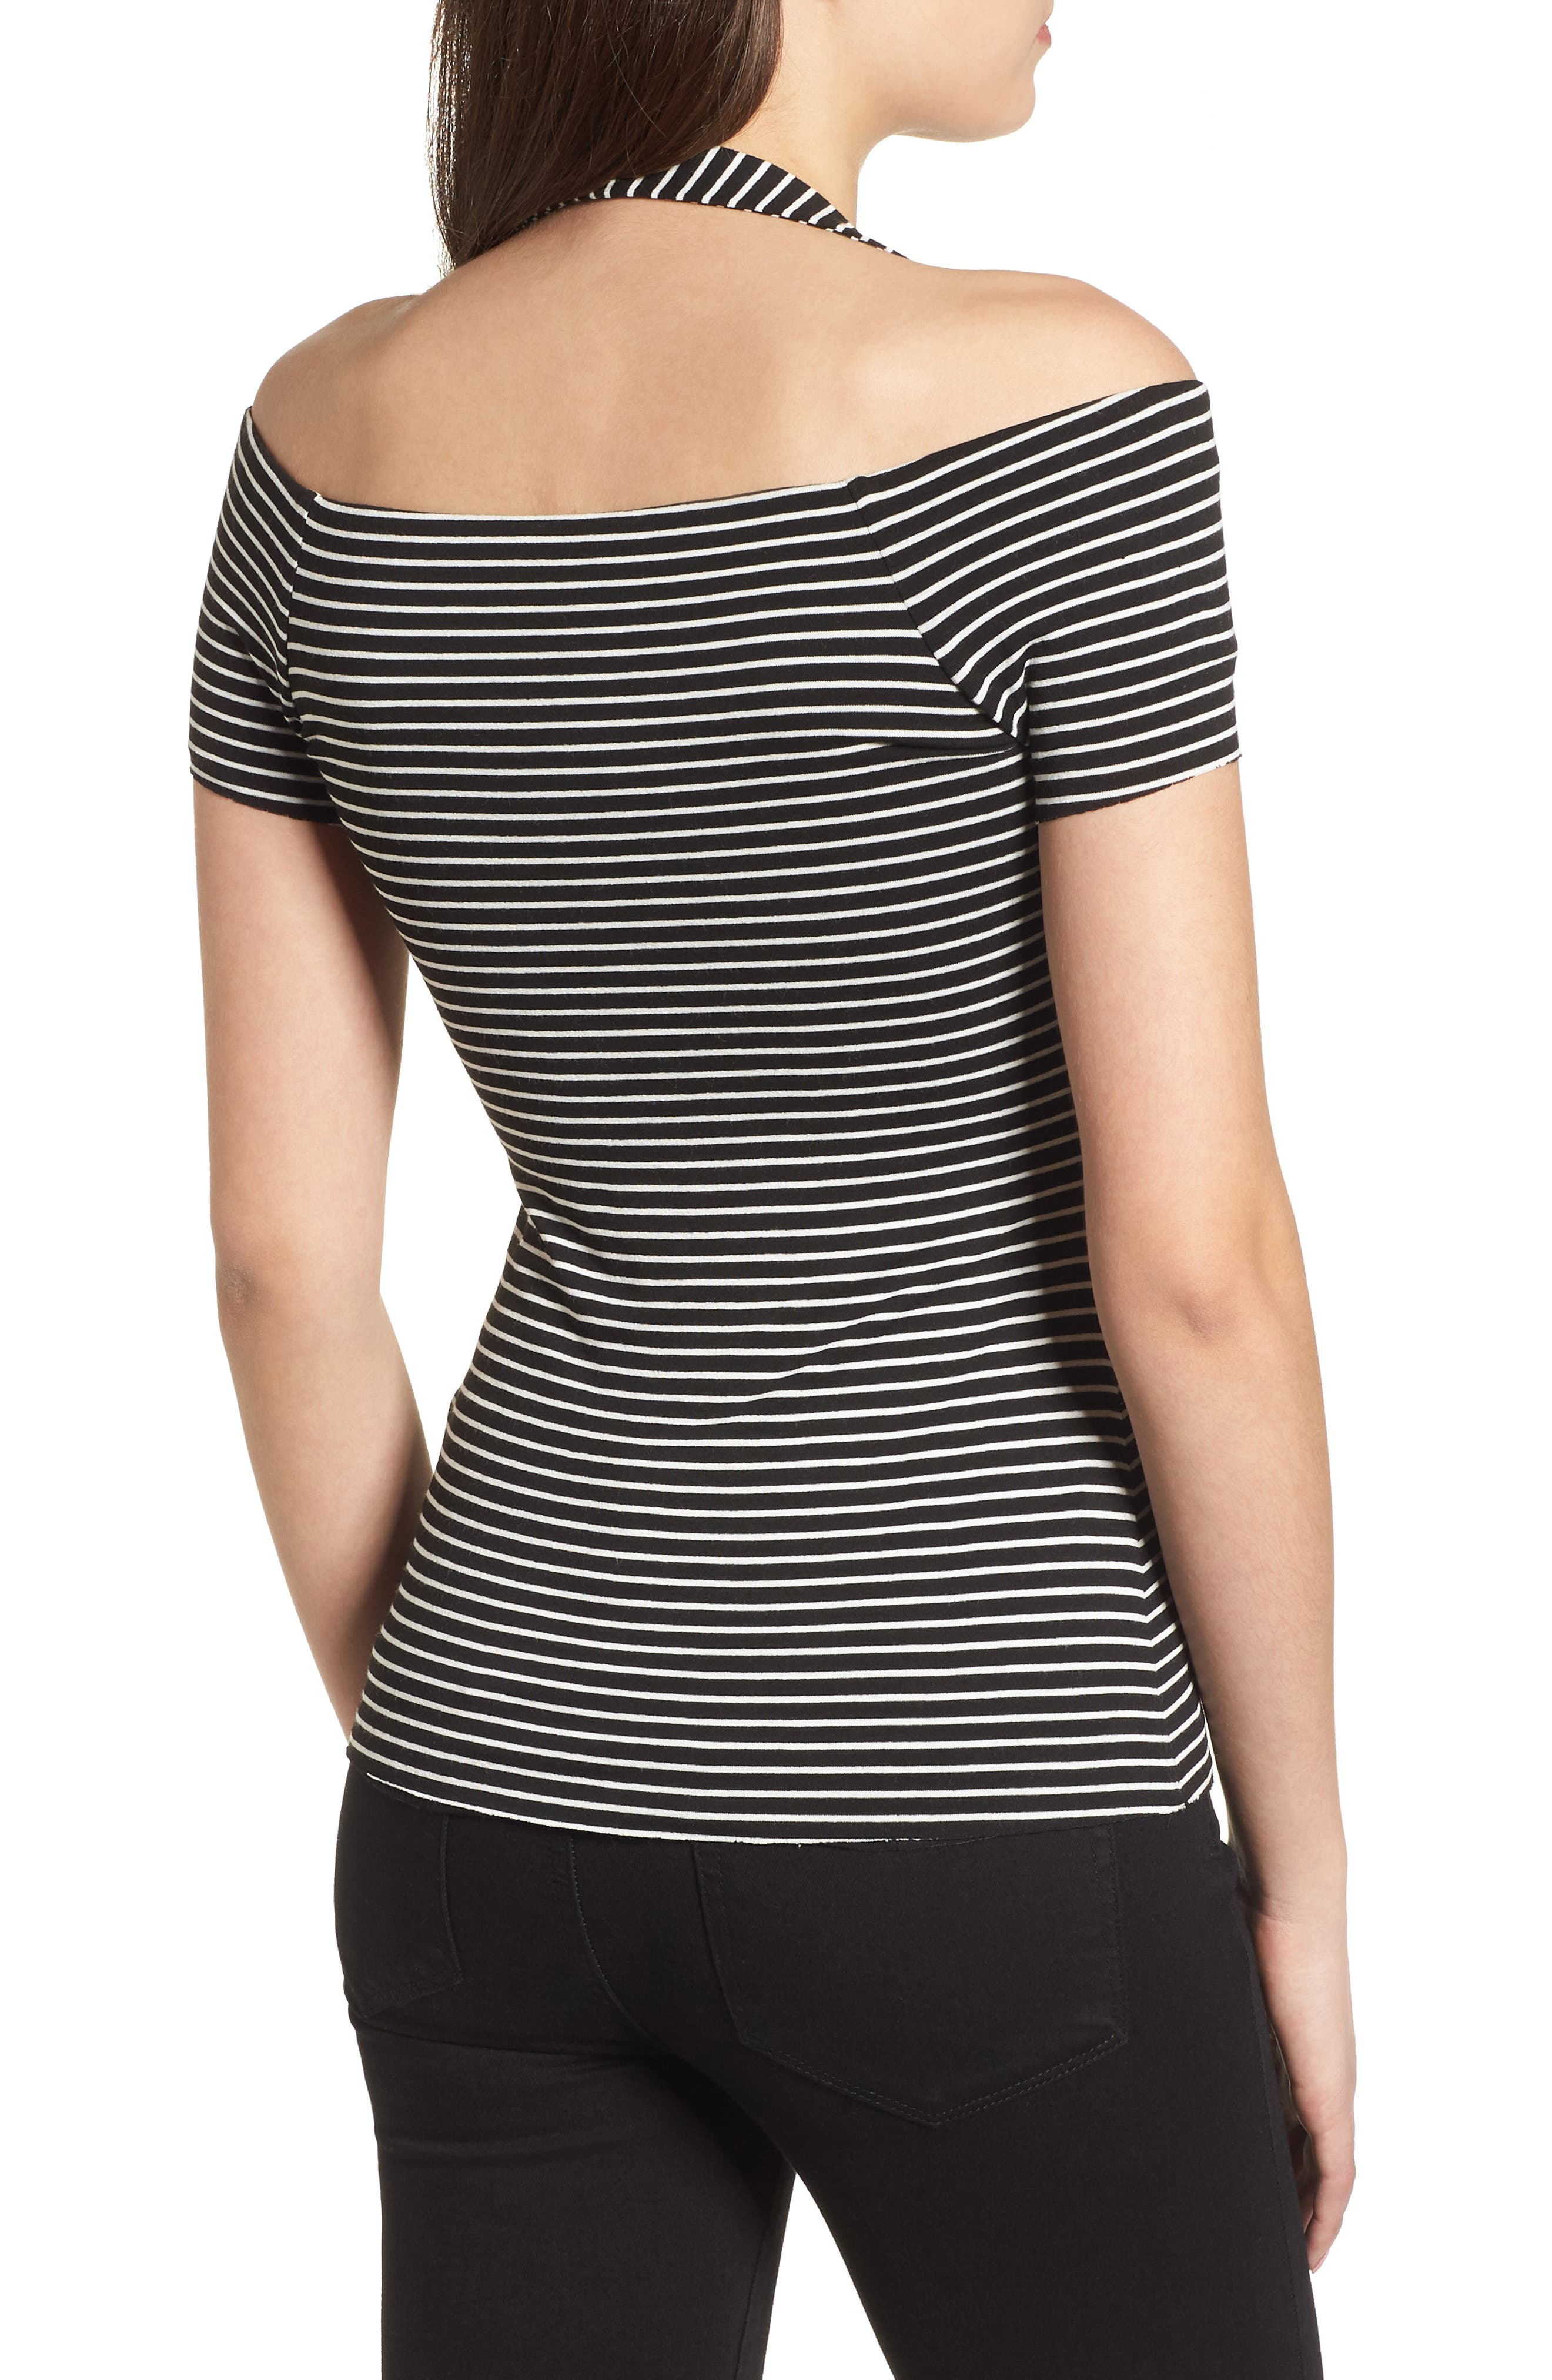 Kiss & Tell Cold Shoulder Top,                             Alternate thumbnail 2, color,